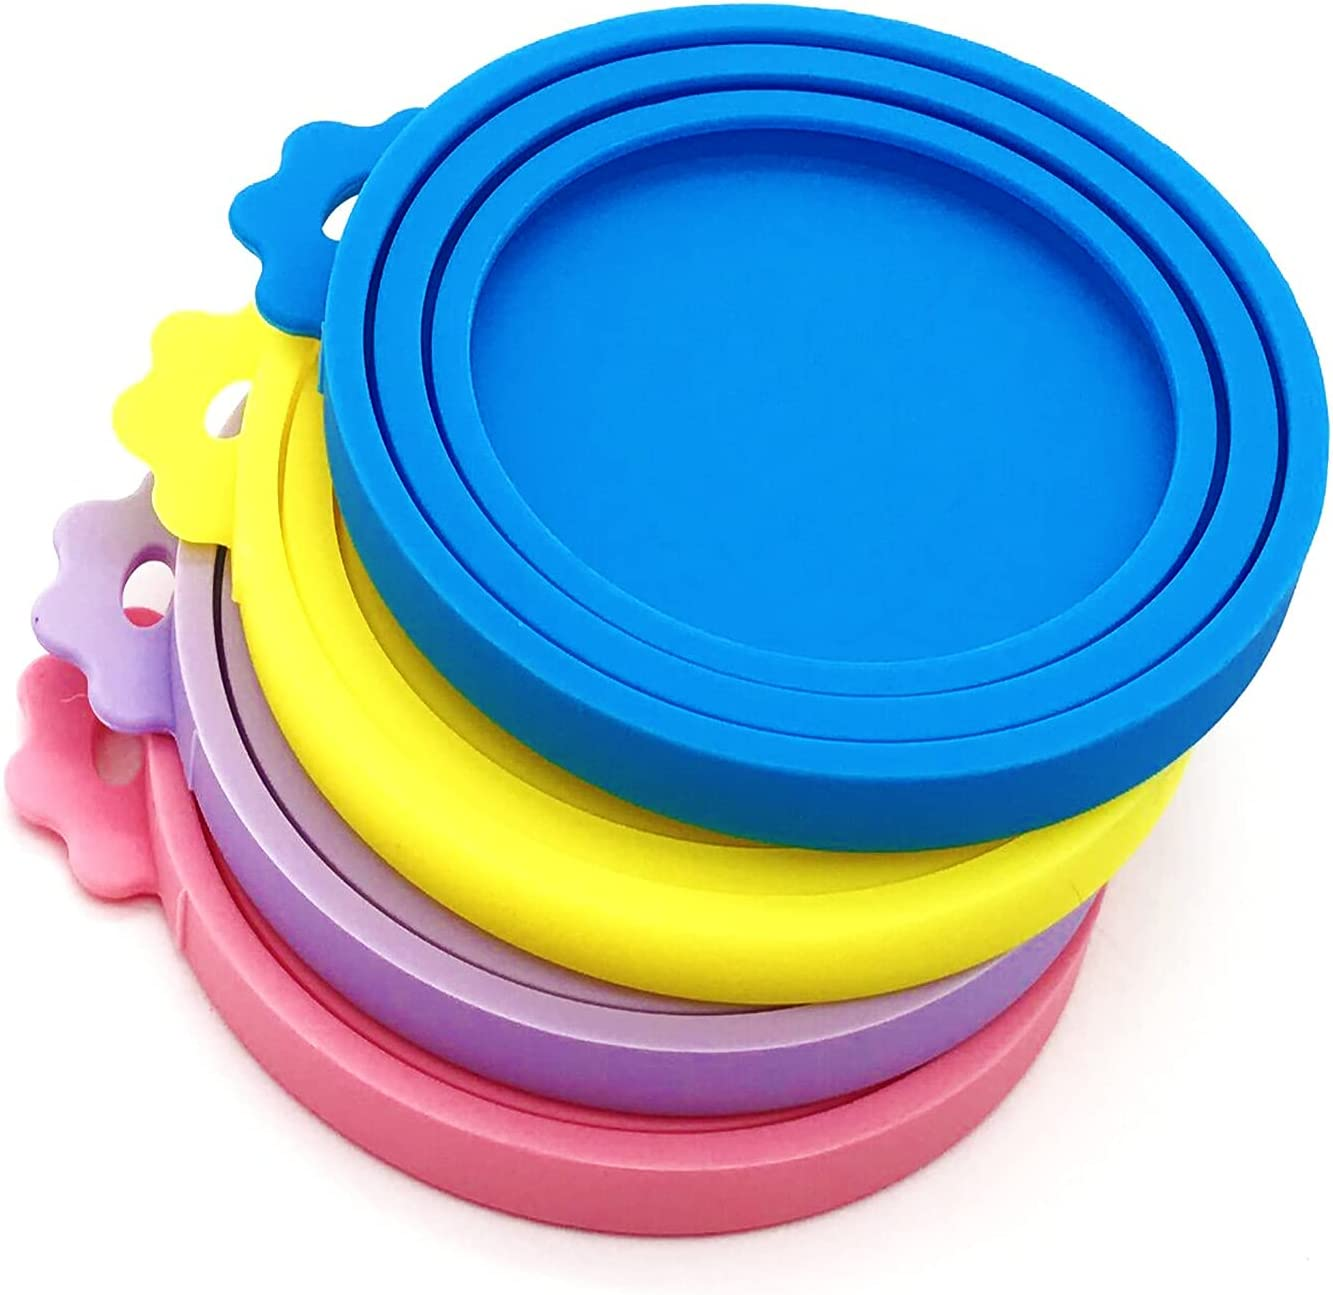 MYYZMY 4 Pcs Pet Can Covers,Food Can Lids, Universal BPA Free Silicone Can Lids Covers for Dog and Cat Food, One Can Cap Fit Most Standard Size Canned Dog Cat Food